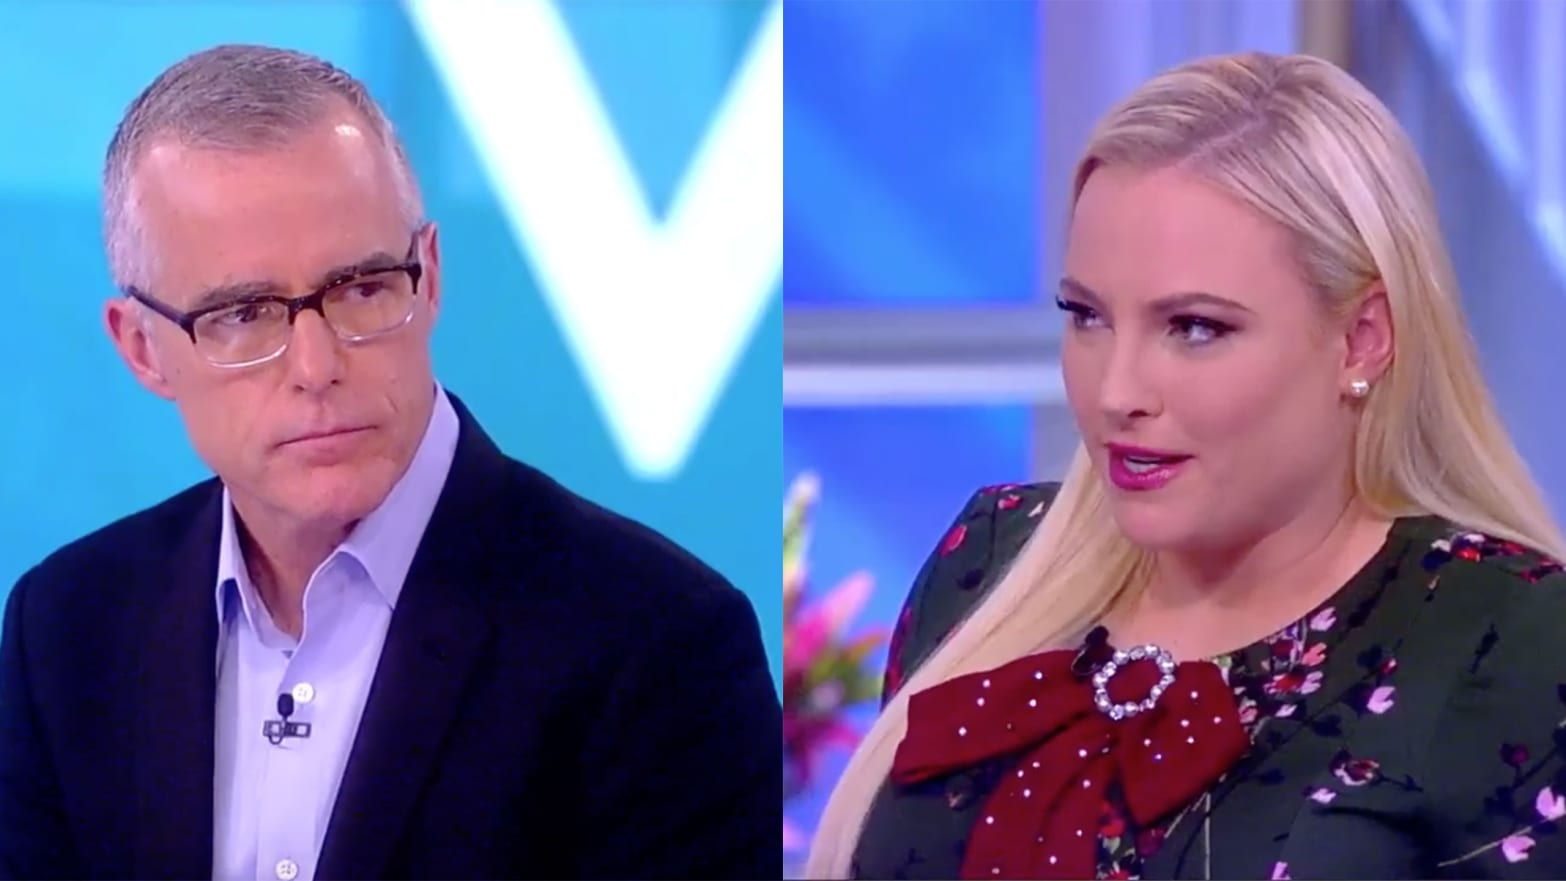 'The View's' Meghan McCain Grills Andrew McCabe: 'I Don't Believe You're a Reliable Narrator'